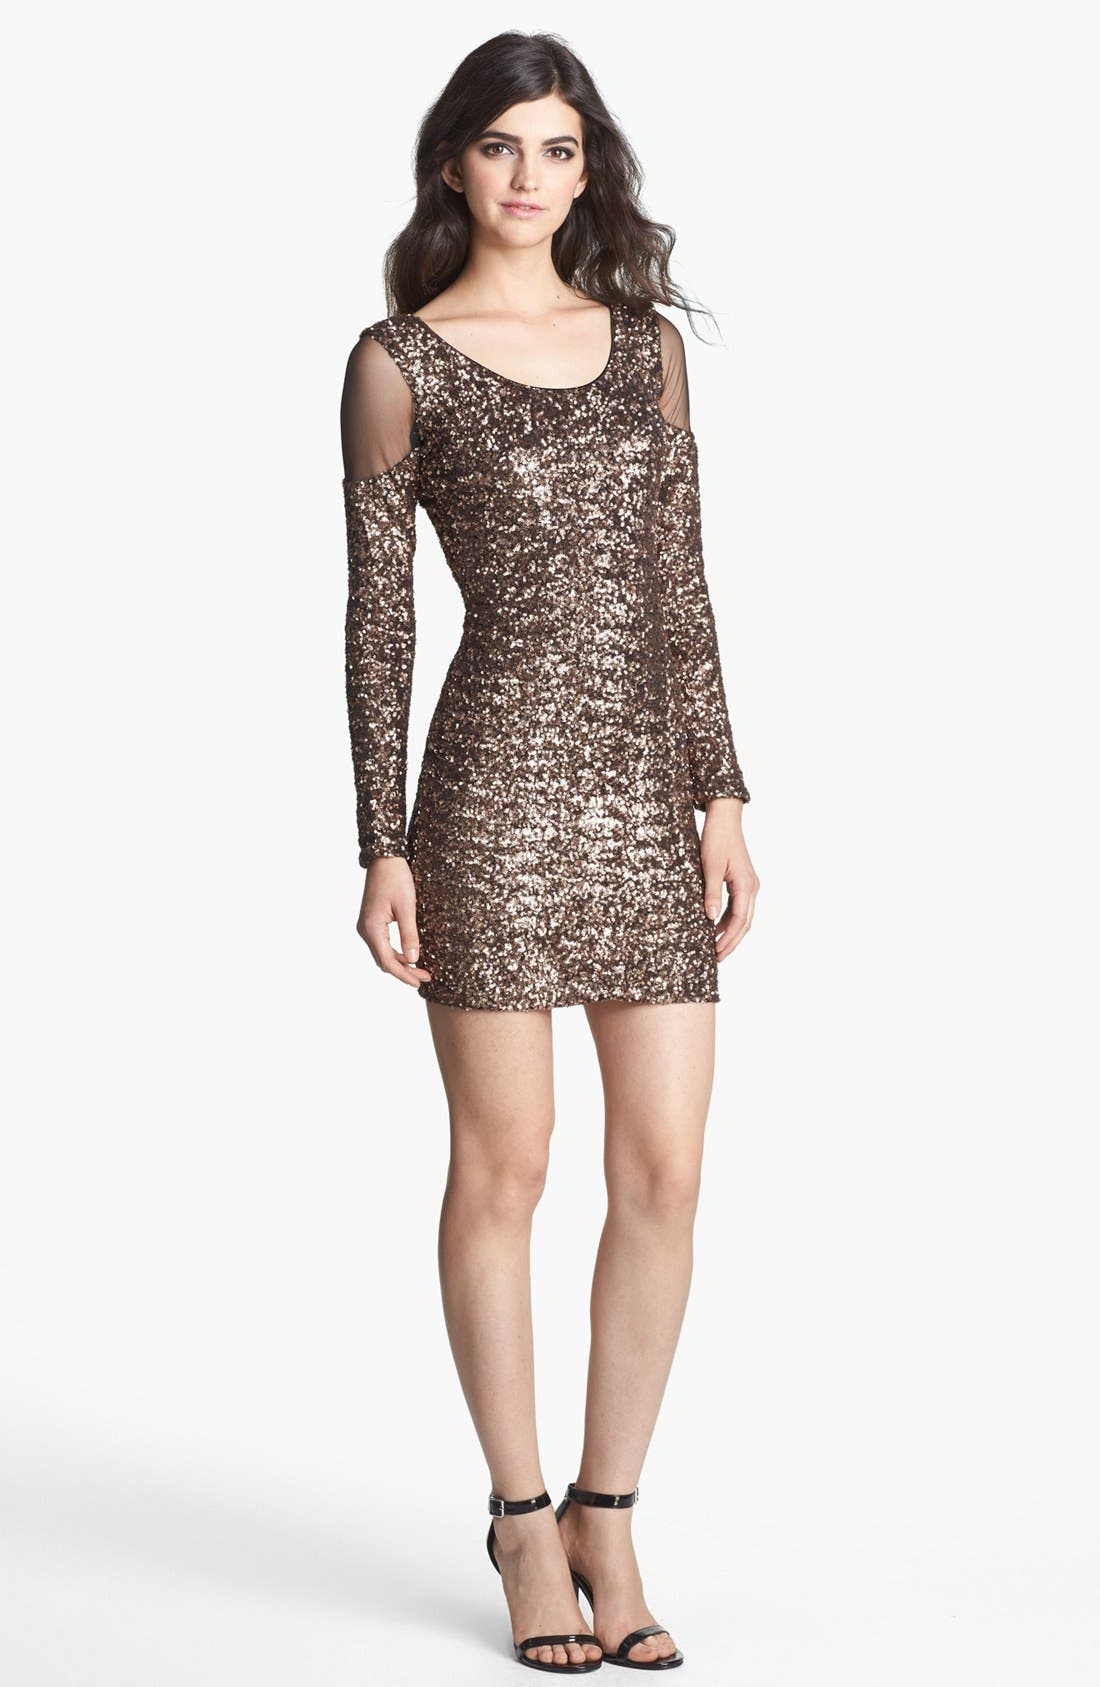 Alternate Image 1 Selected - Dress the Population 'Jaden' Sequin Body-Con Dress